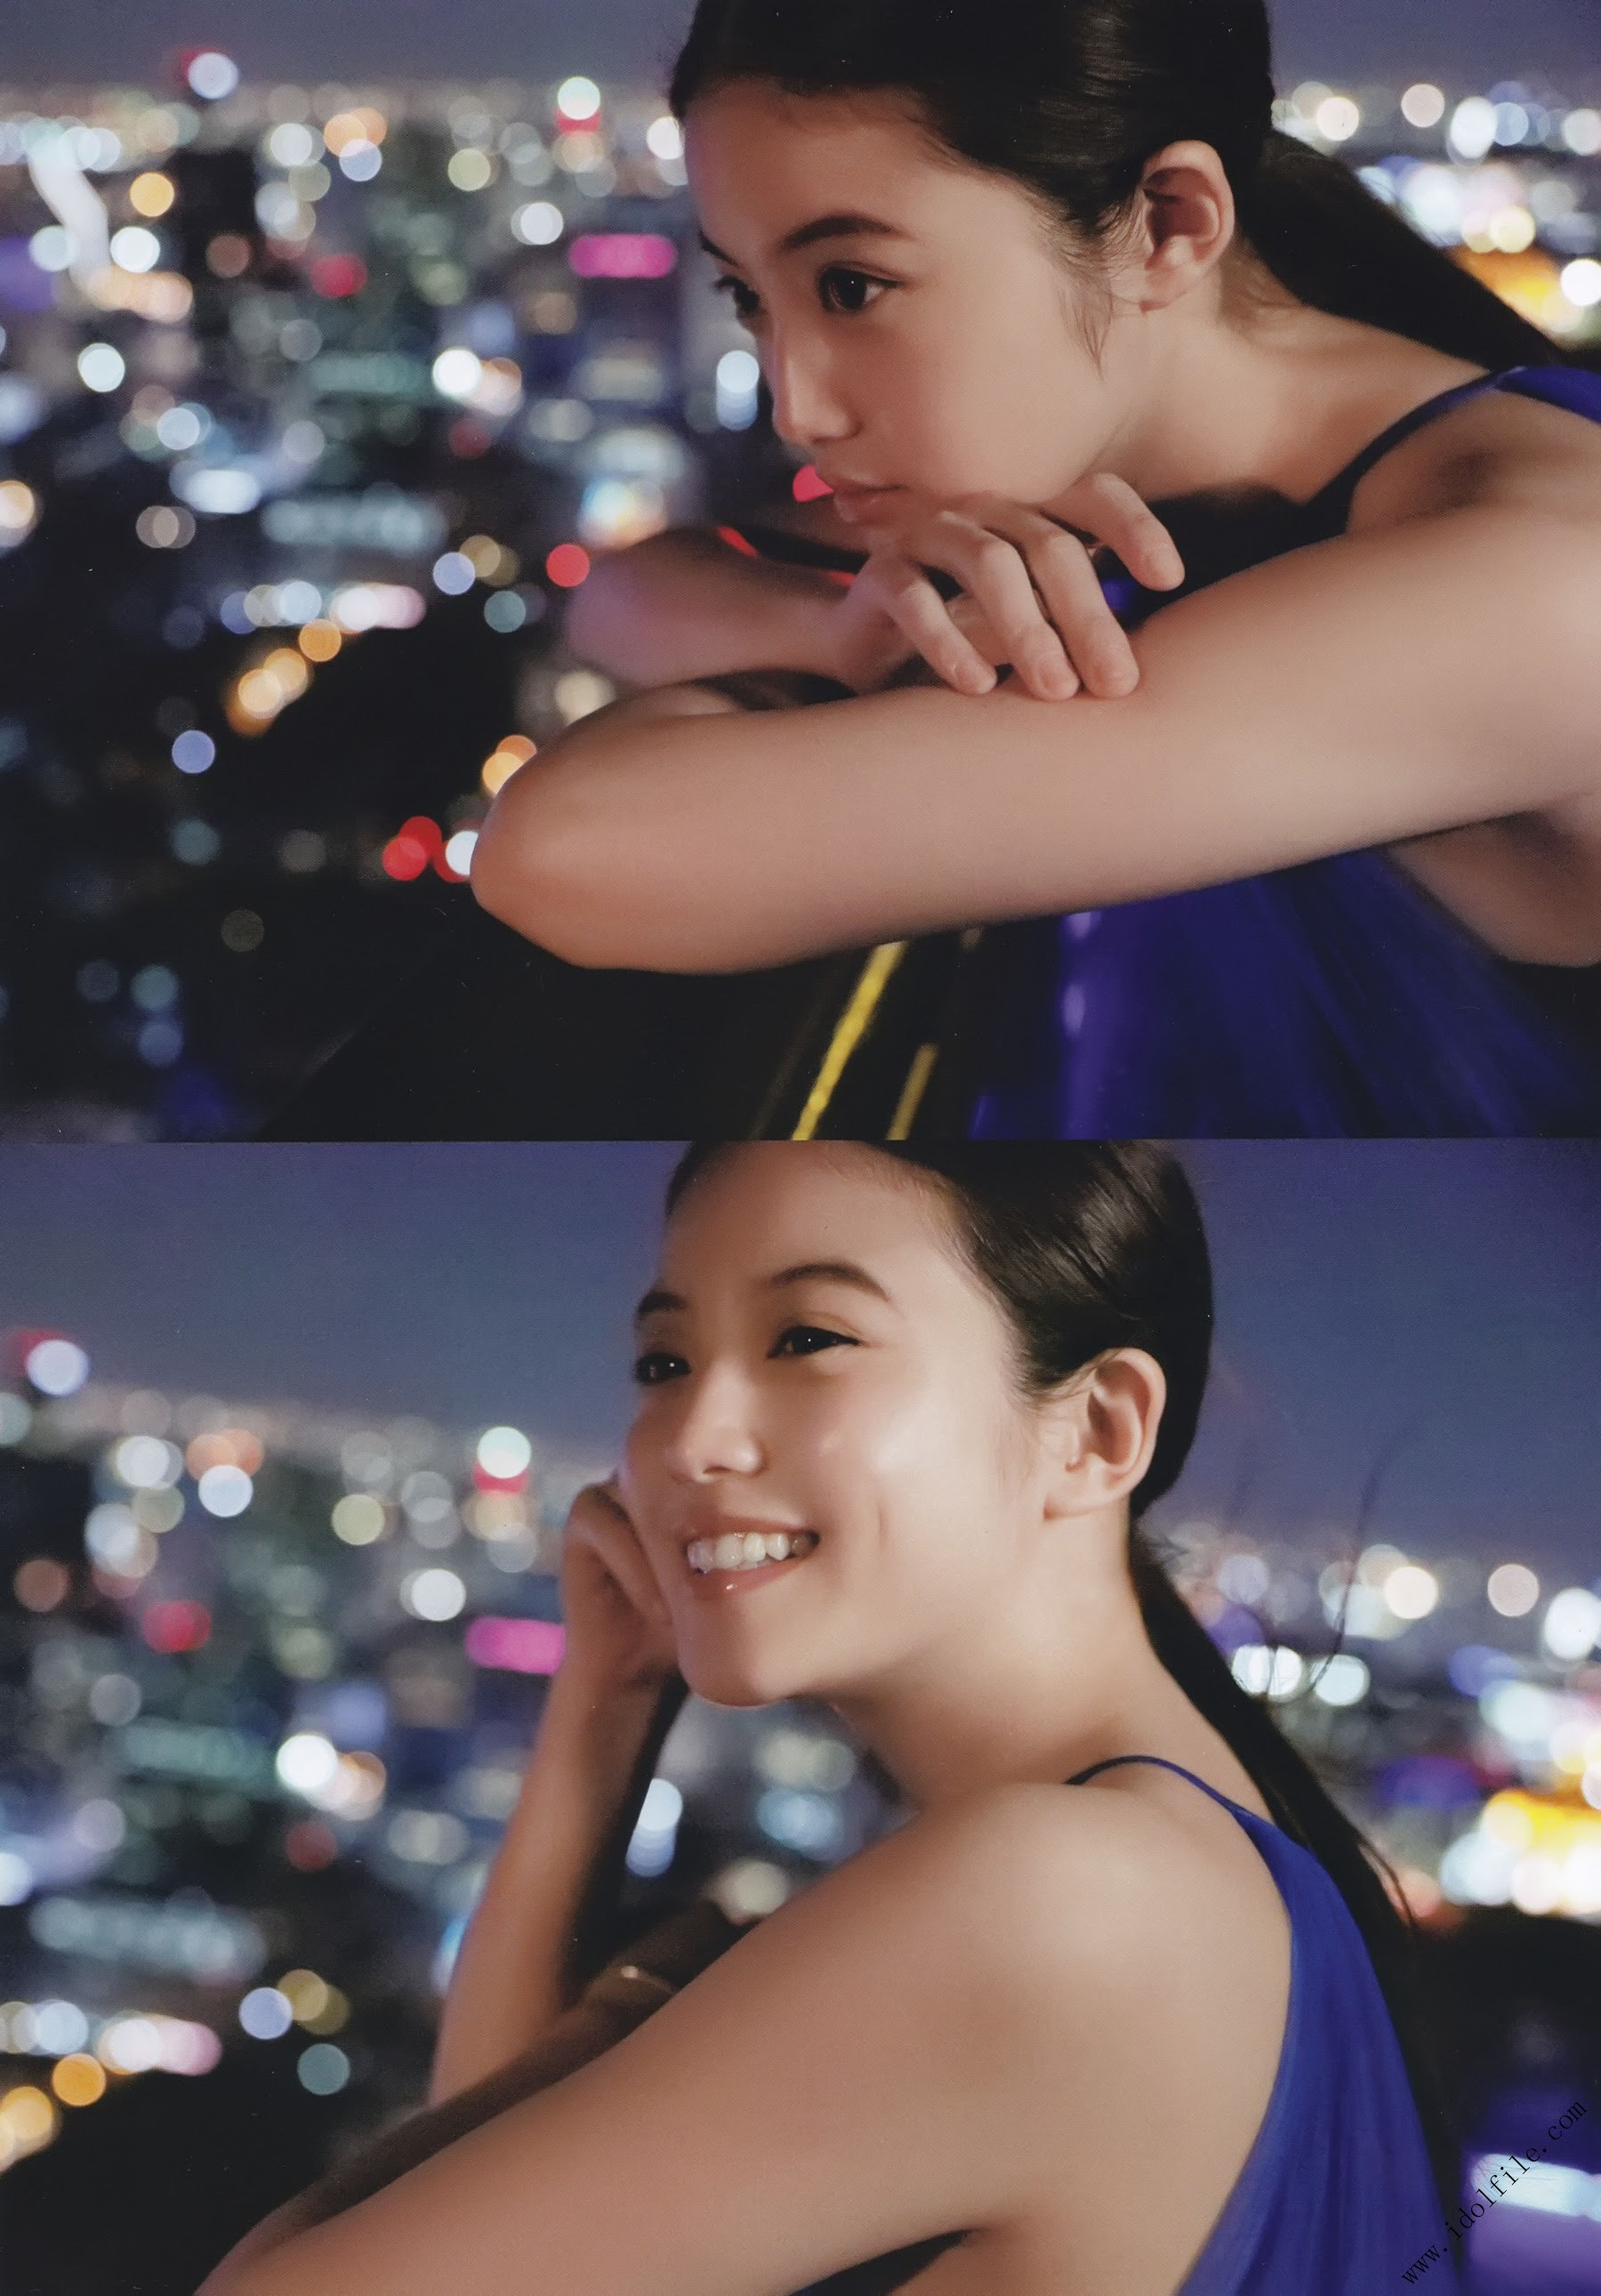 Pretty and beautiful, 22 years old and innocent Moving to the next stage as an actress Mio Imada134